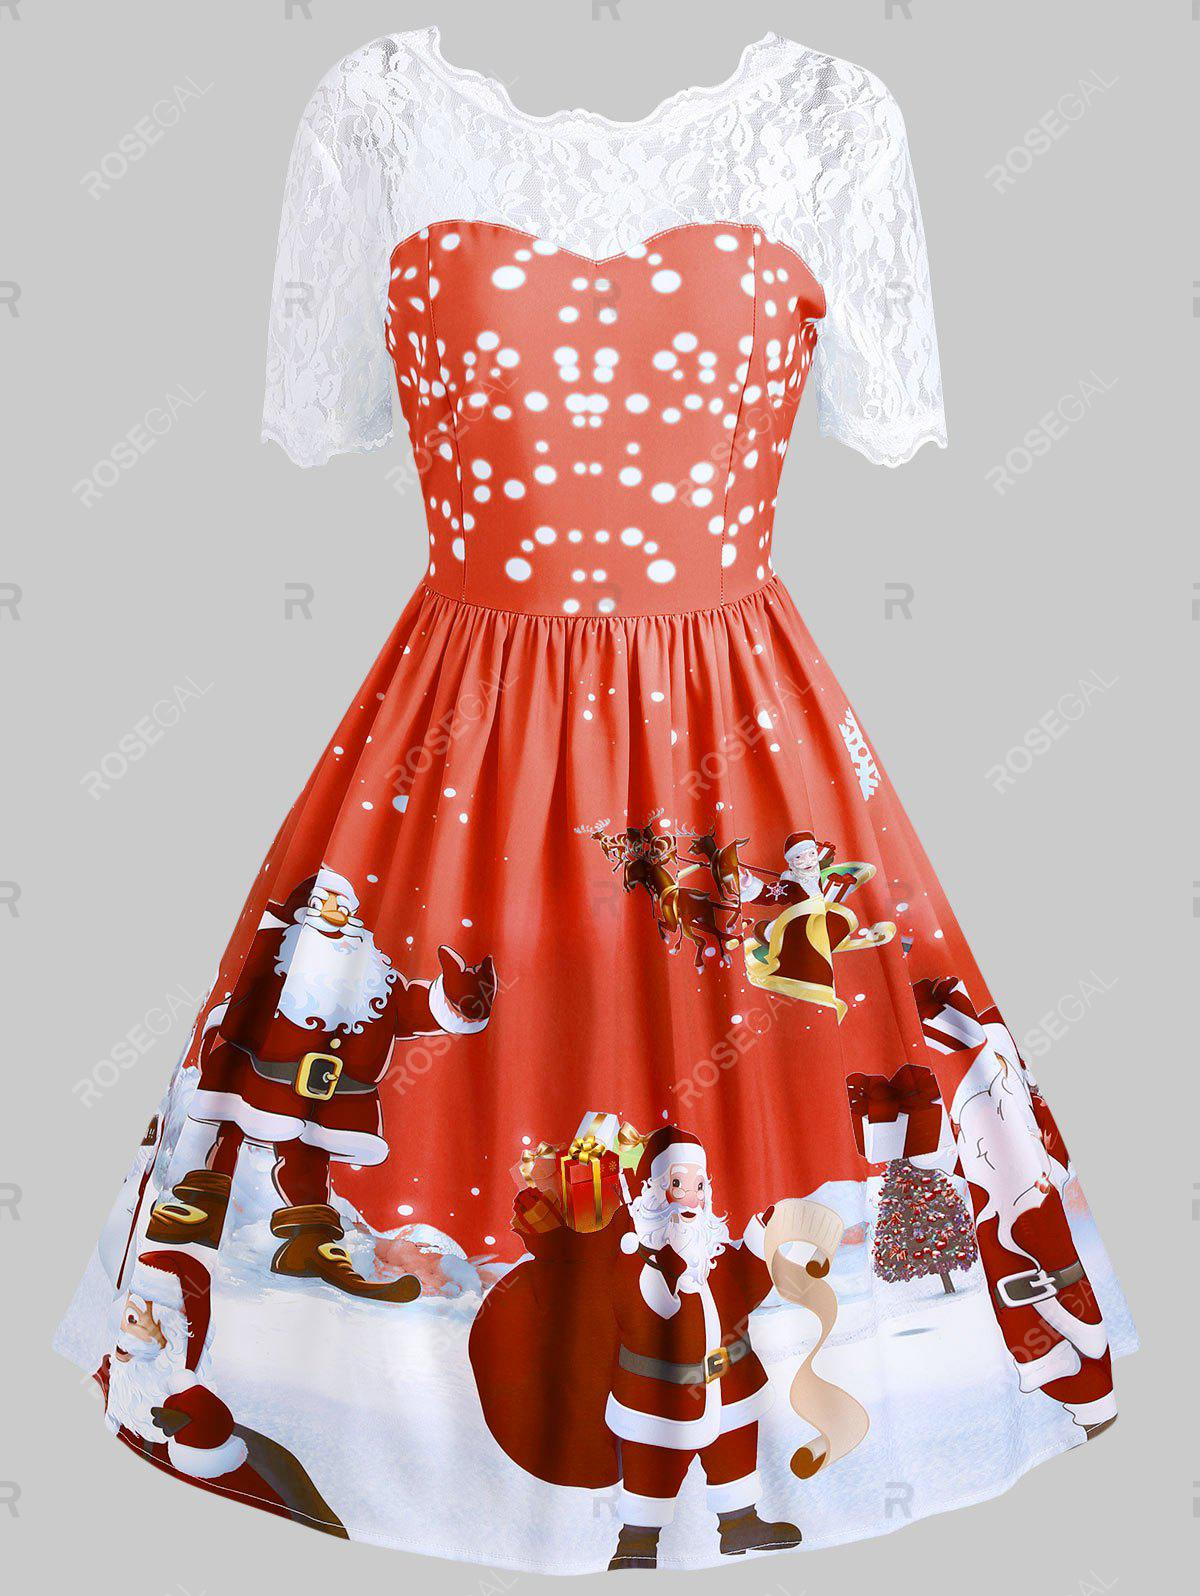 Hot Vintage Lace Insert Santa Claus Print Christmas Dress